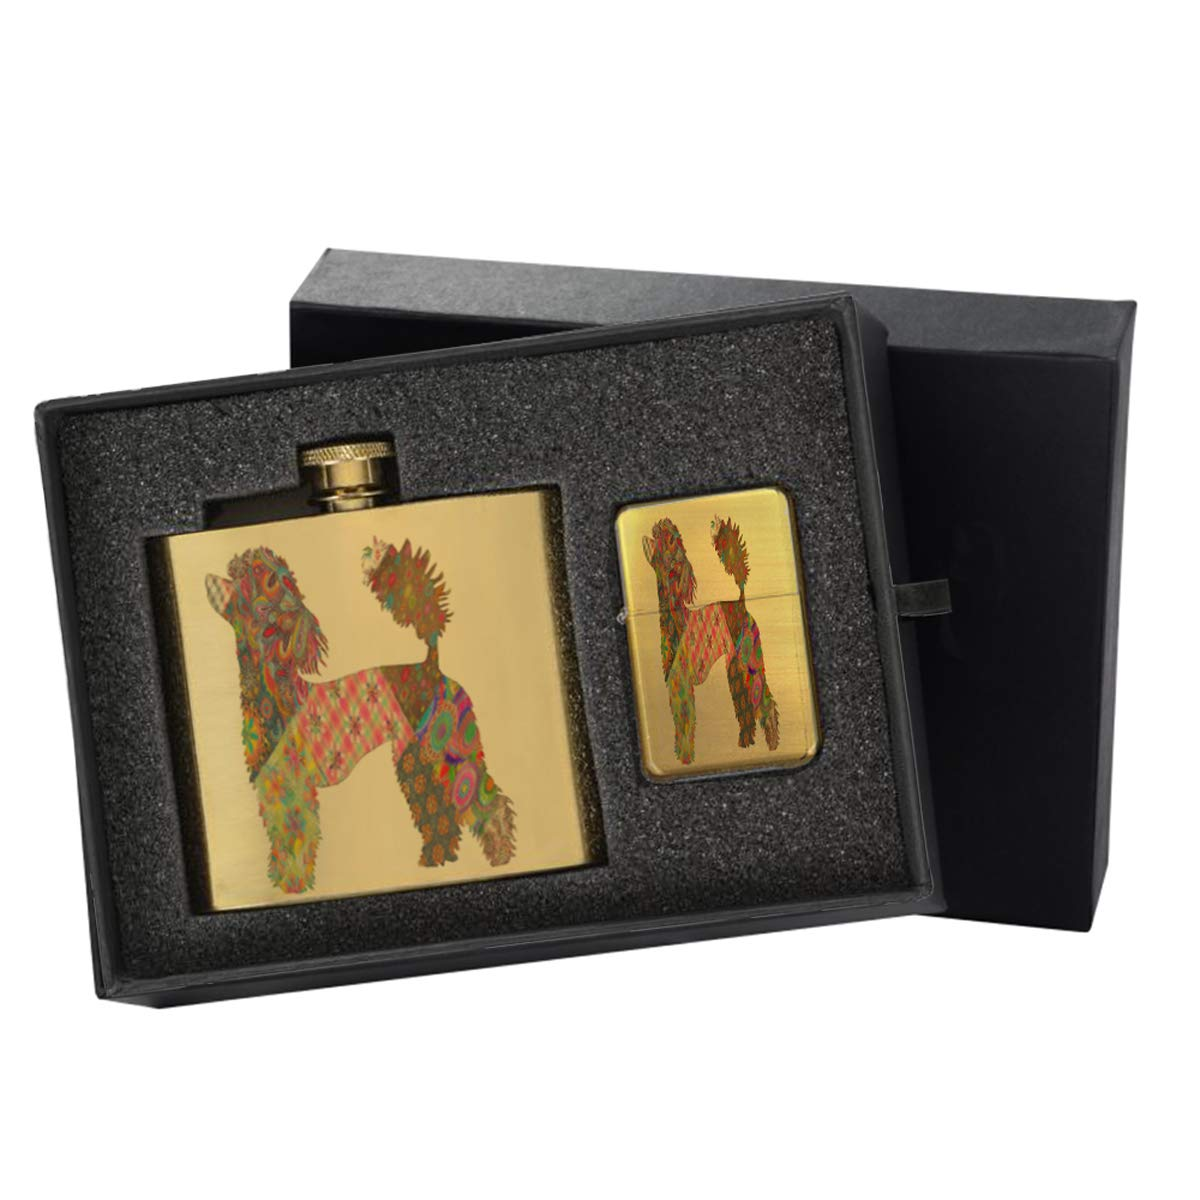 French Poodle Pattern - Gold Lighter and Pocket Hip Liquor Flask Survival Camping Gift Box Set